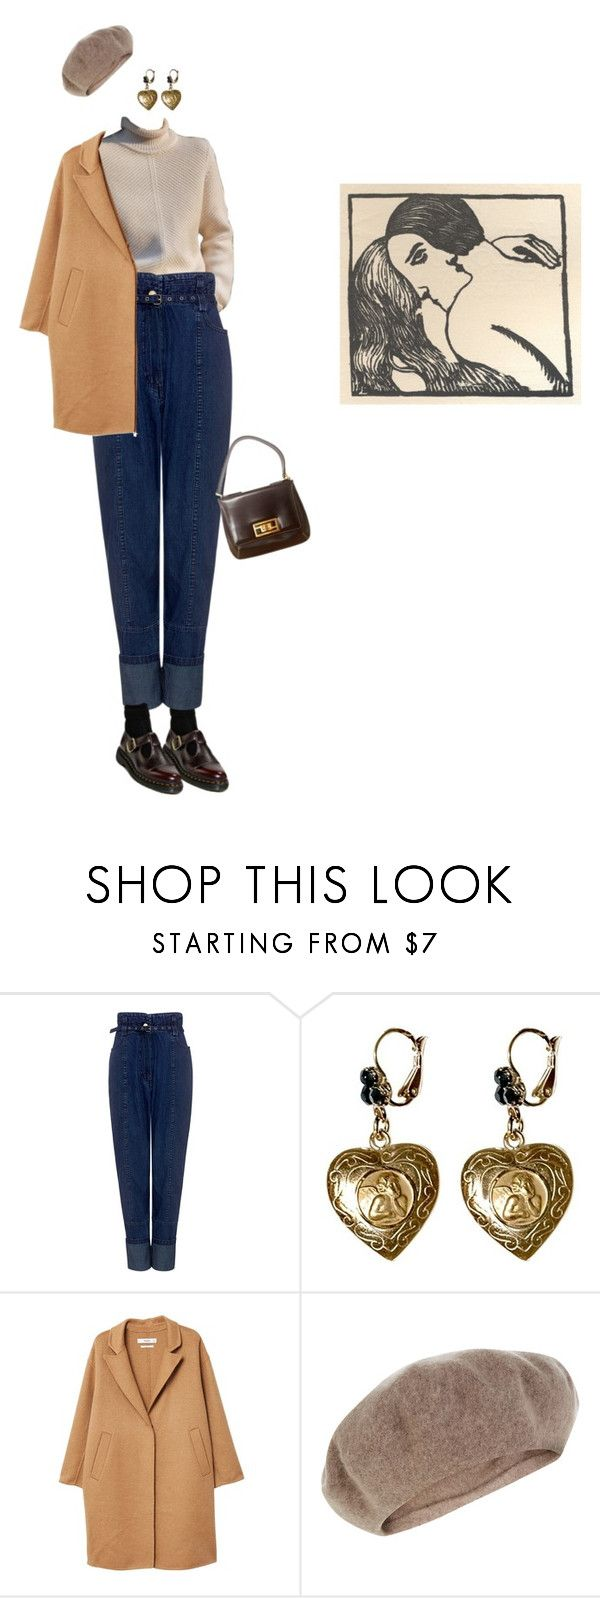 """""""my kind of woman"""" by hxsyaren ❤ liked on Polyvore featuring Rachel Comey, Dolce&Gabbana, MANGO, Accessorize, Fendi and 1928"""